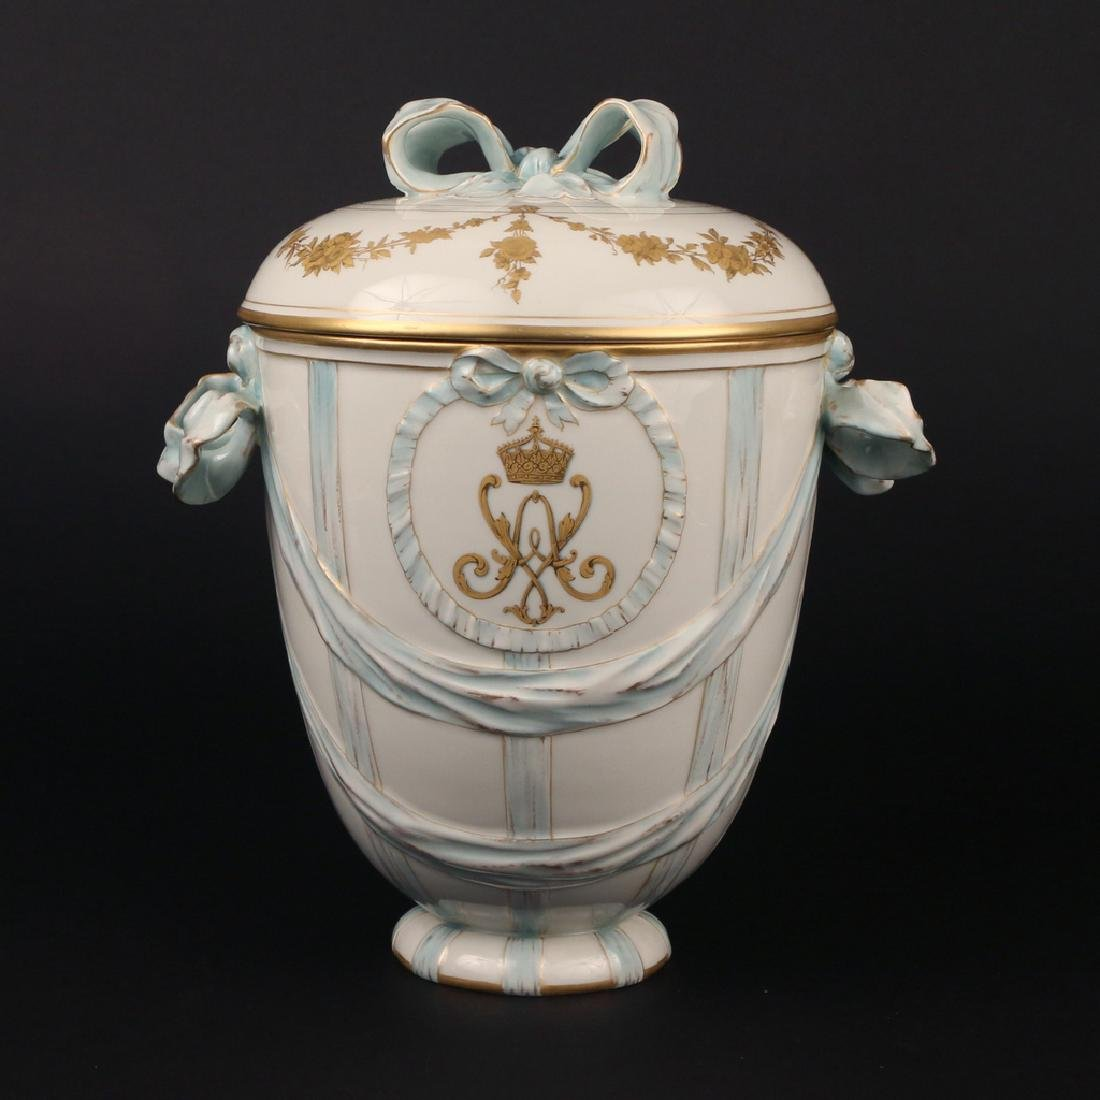 KPM PORCELAIN COVERED JAR